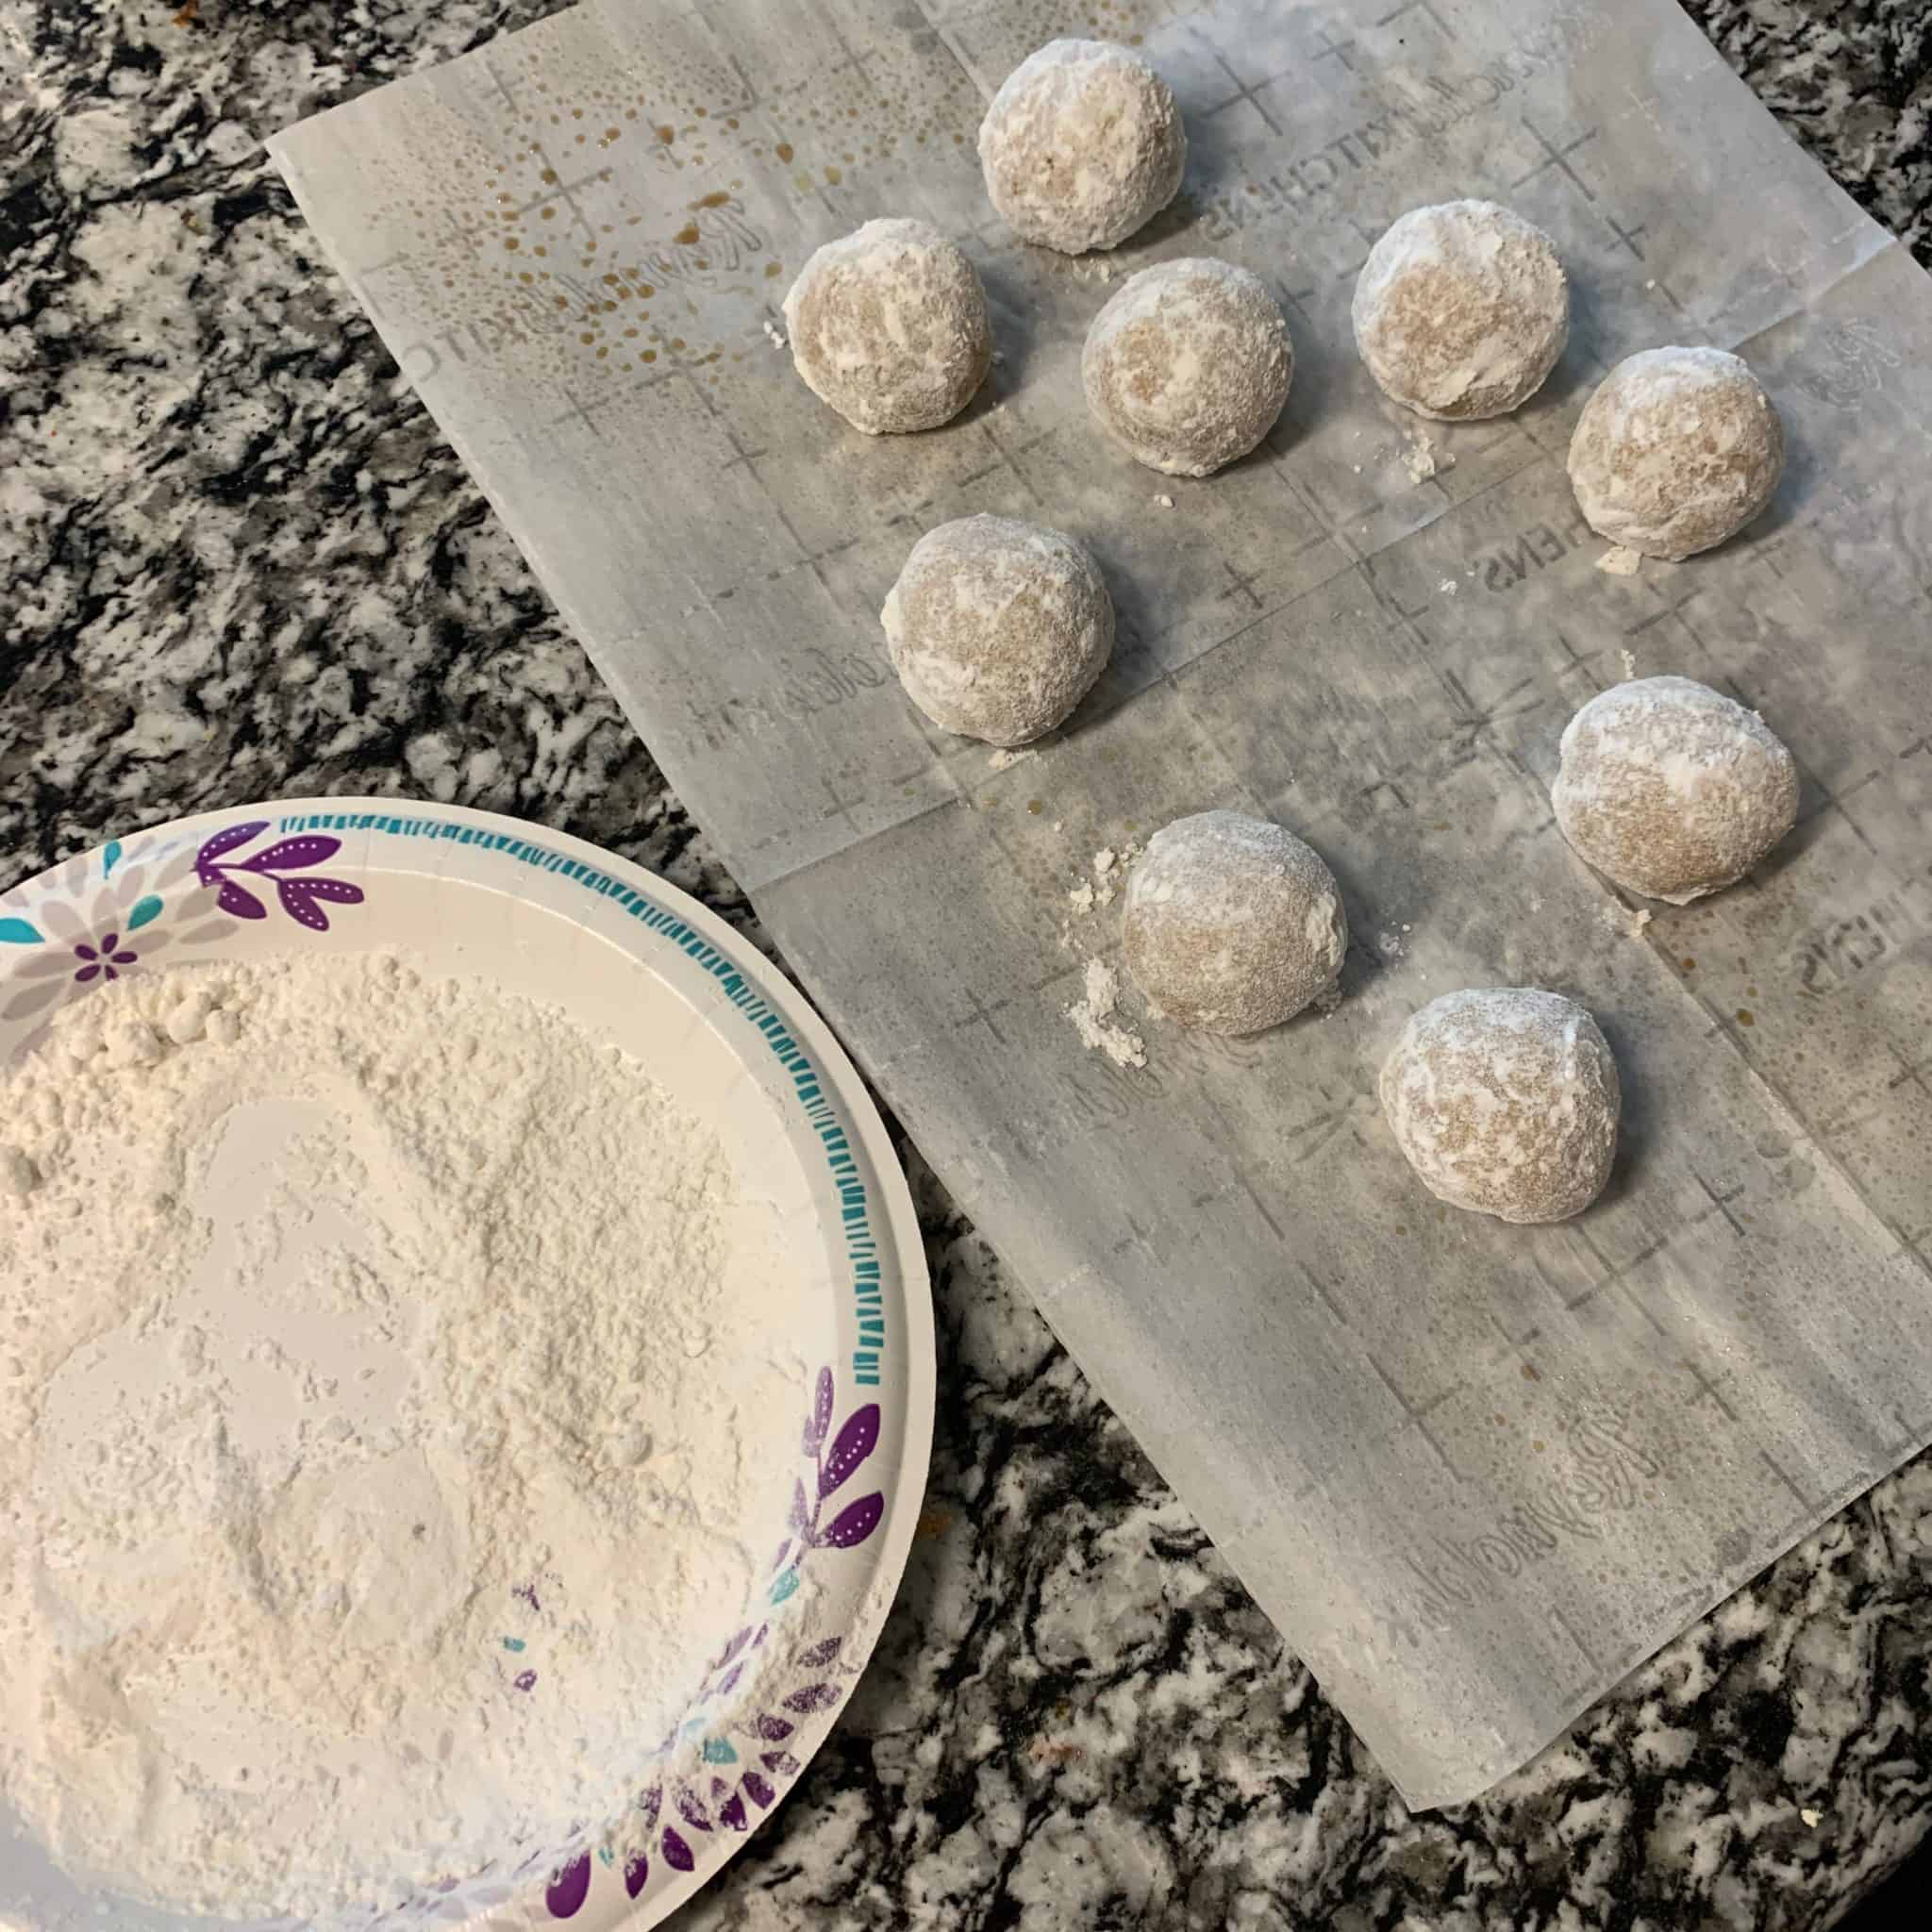 swerve confectioners on a plate with the gingerbread protein balls covered in powdered sugar